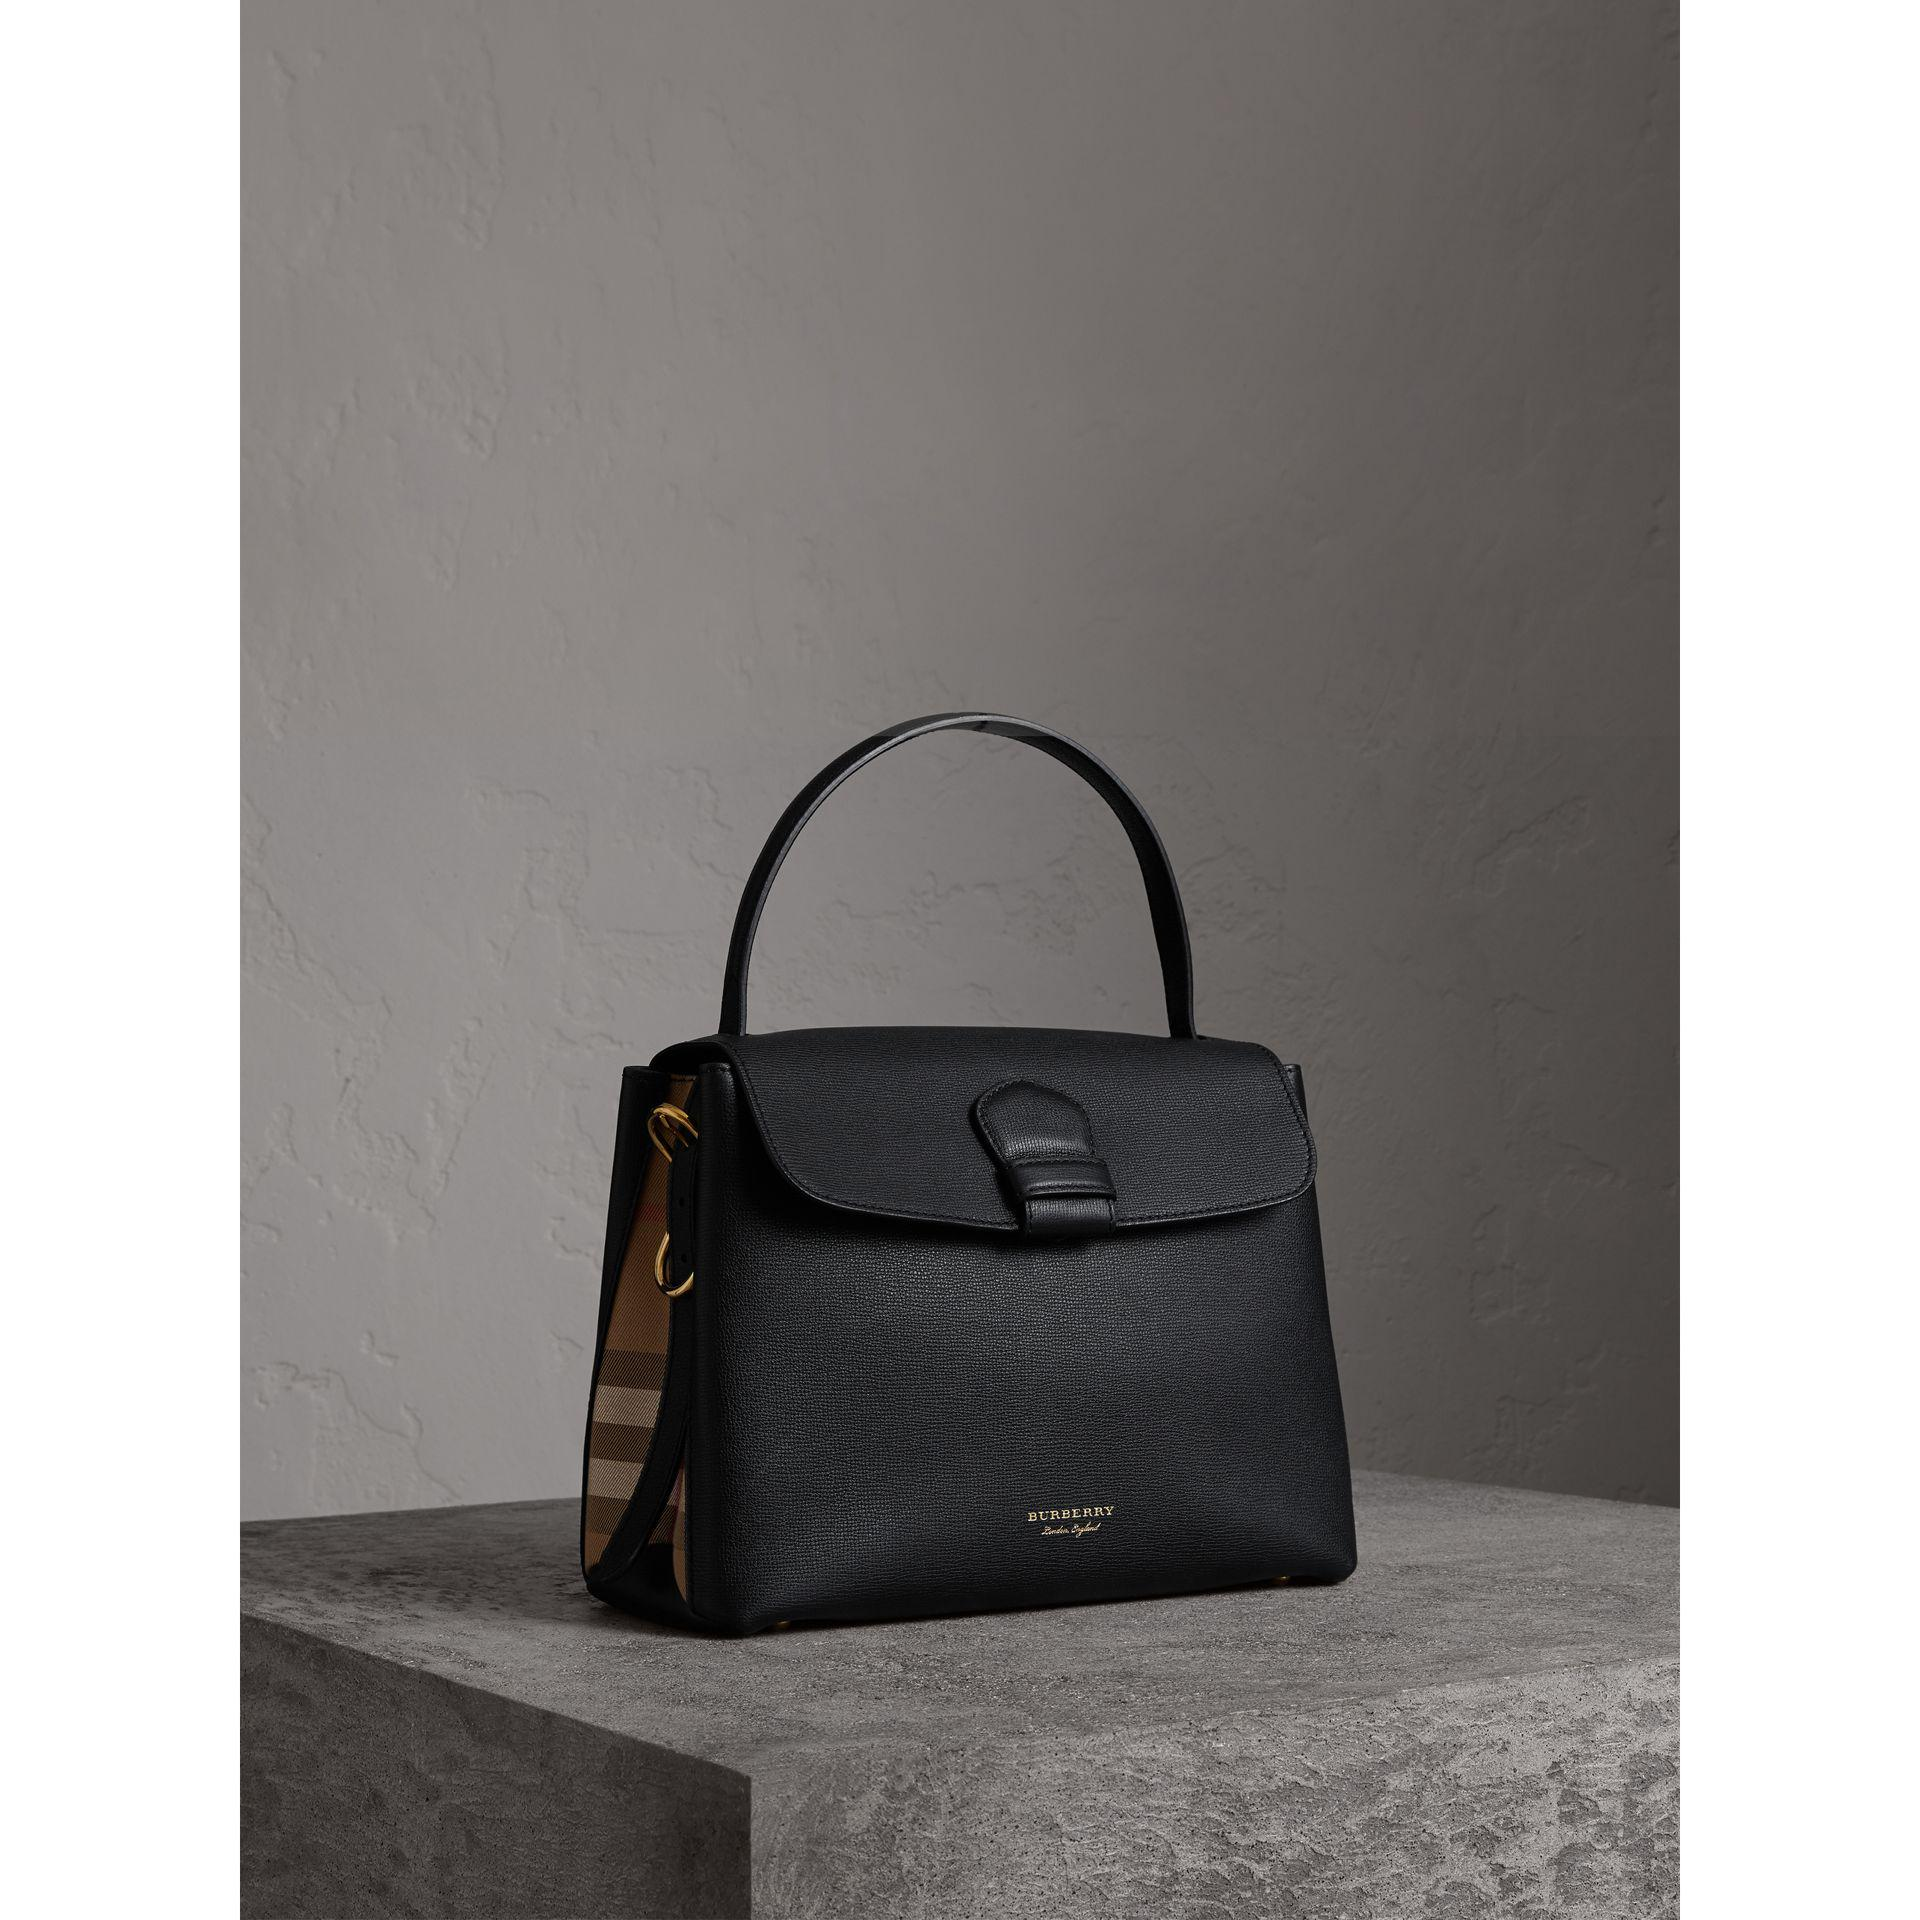 863ab5fda245 Burberry Medium Grainy Leather And House Check Tote Bag Black in ...